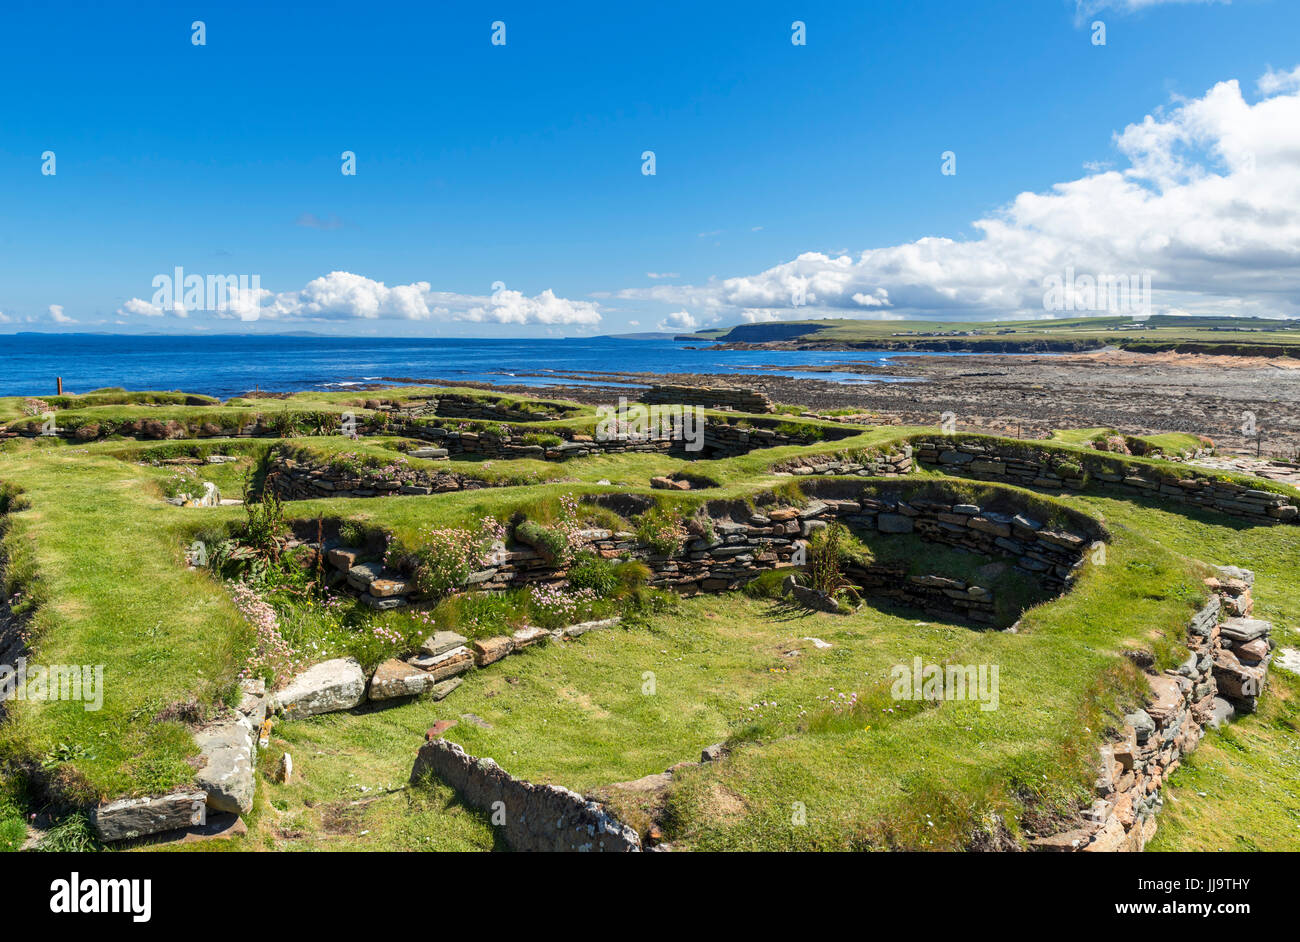 Remains of a Viking settlement from around 1000 AD, Brough of Birsay, Mainland, Orkney, Scotland, UK - Stock Image